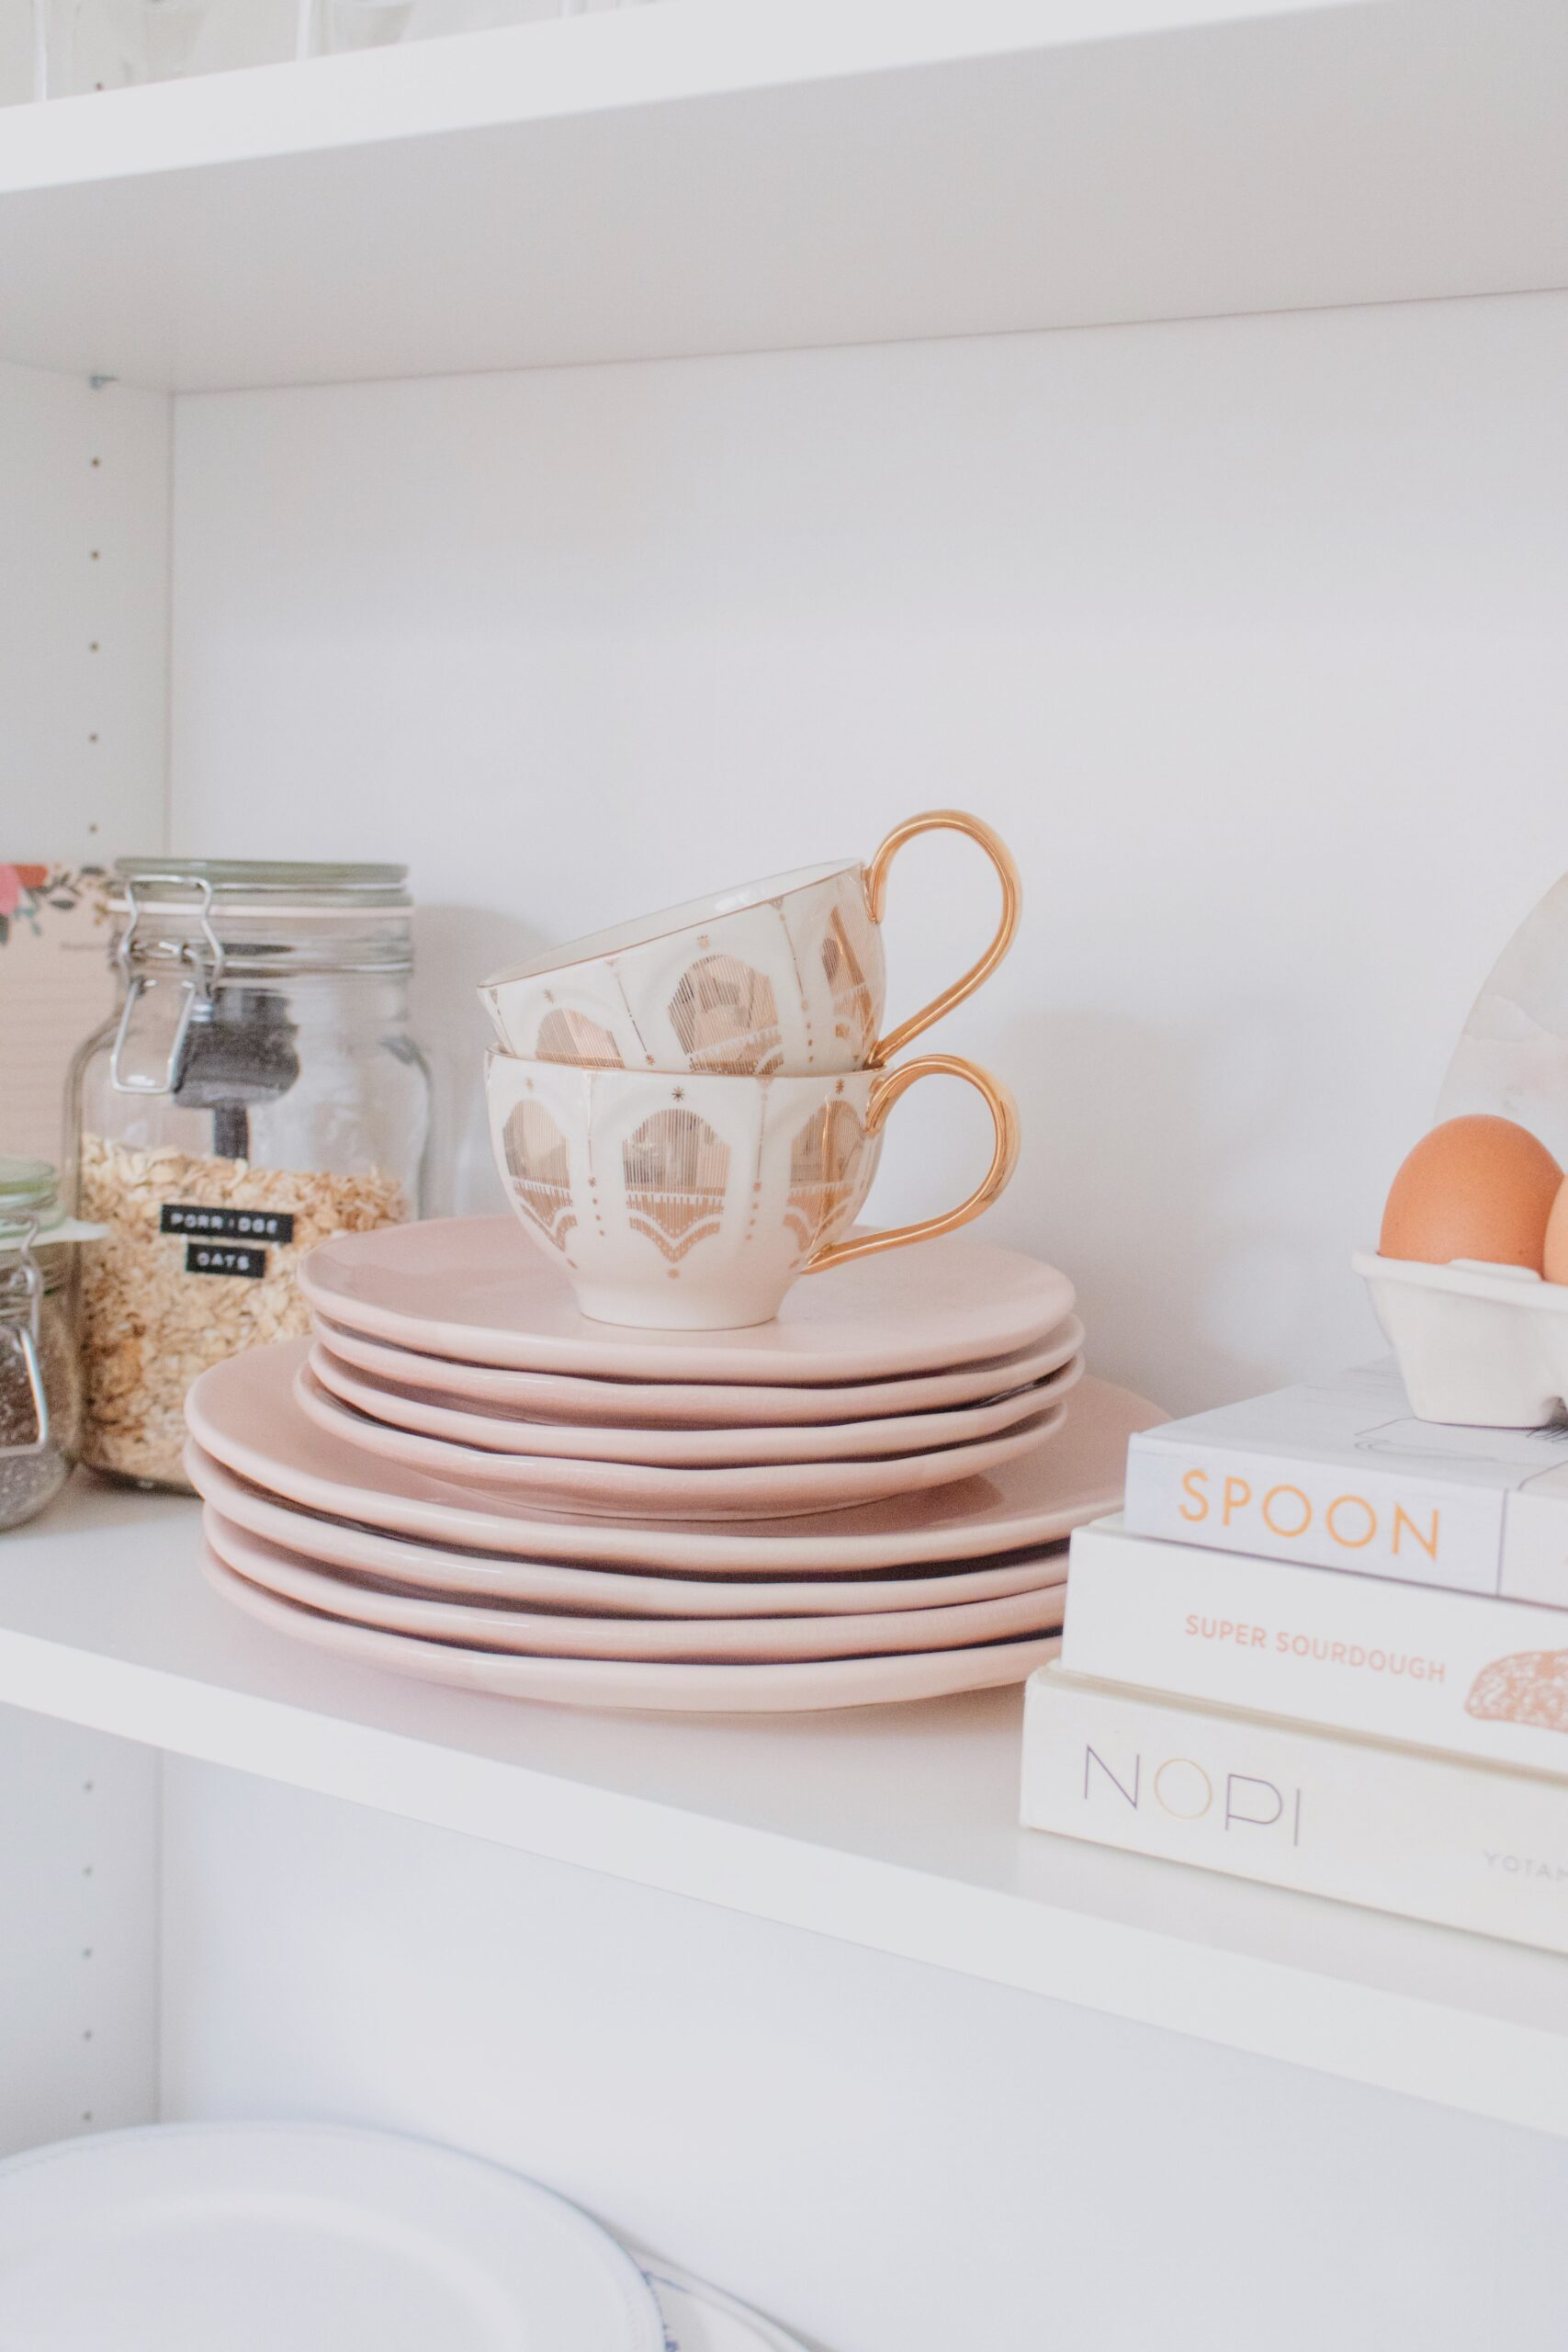 Latest Finds in the Anthropologie Sale